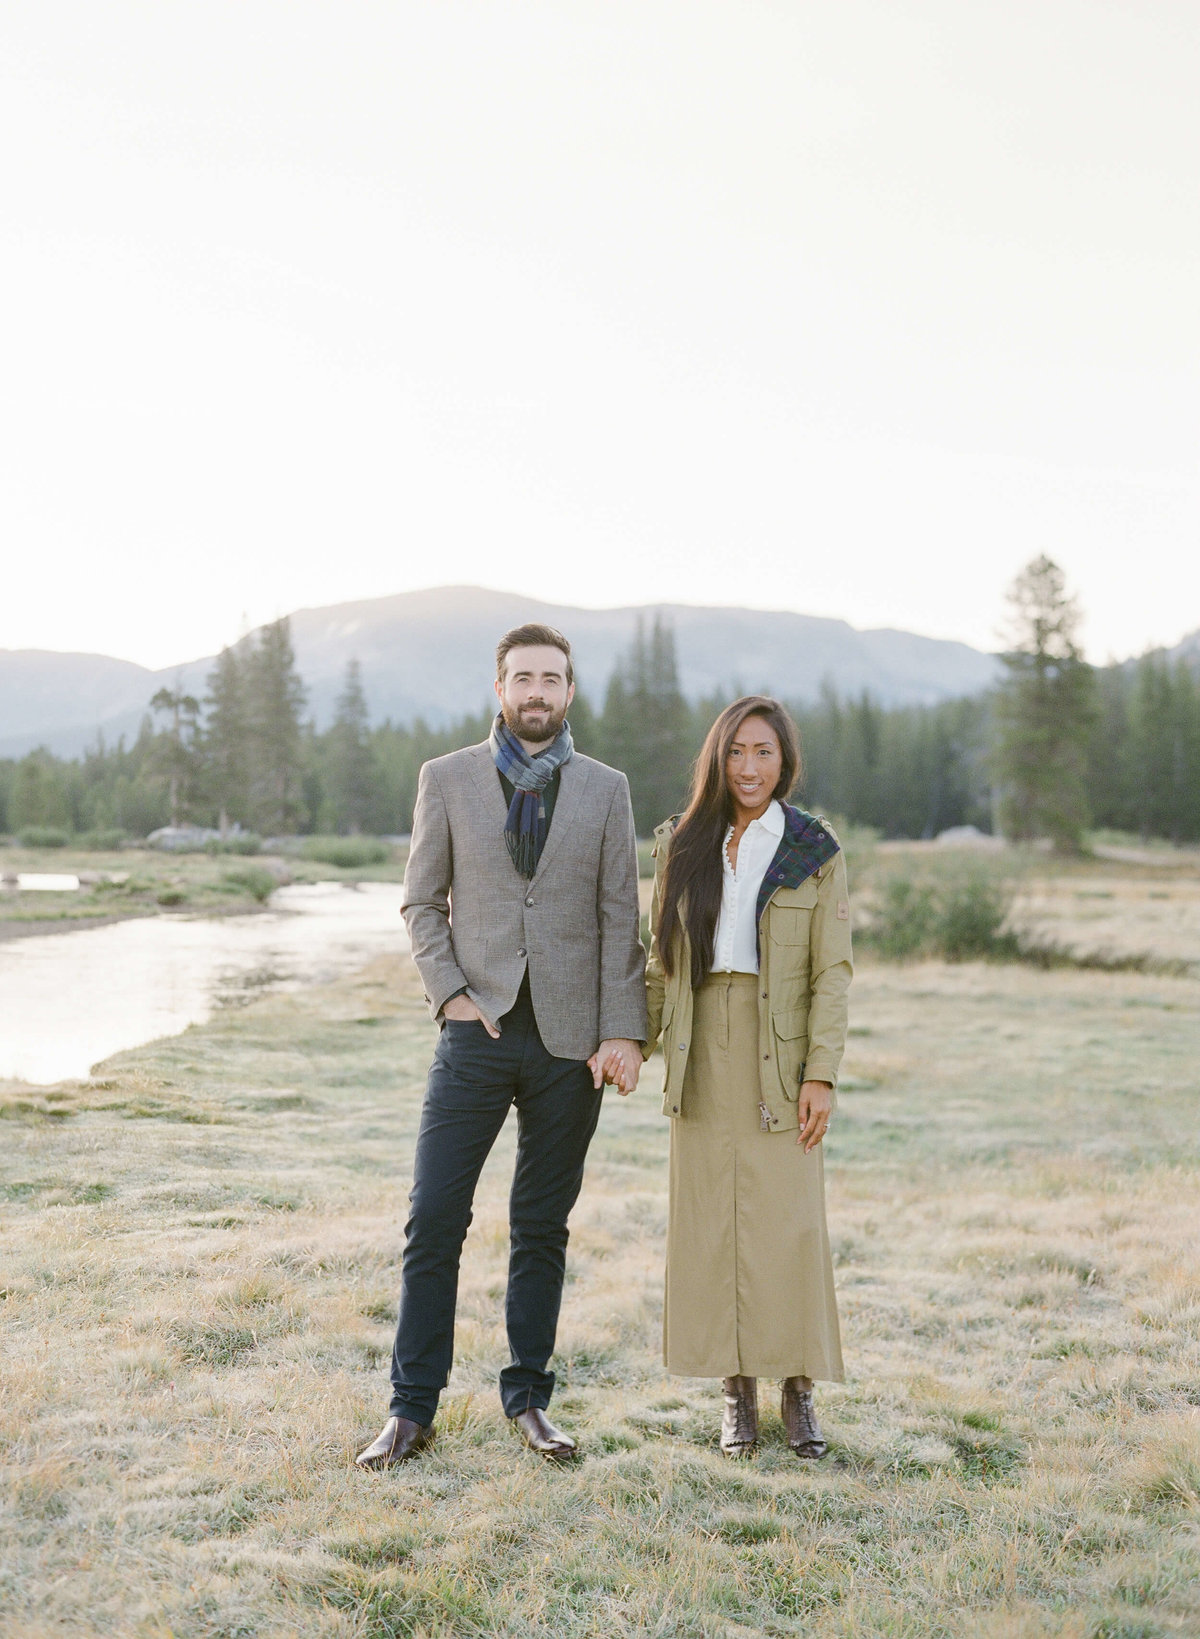 10-KTMerry-destination-engagement-photography-couple-Yosemite